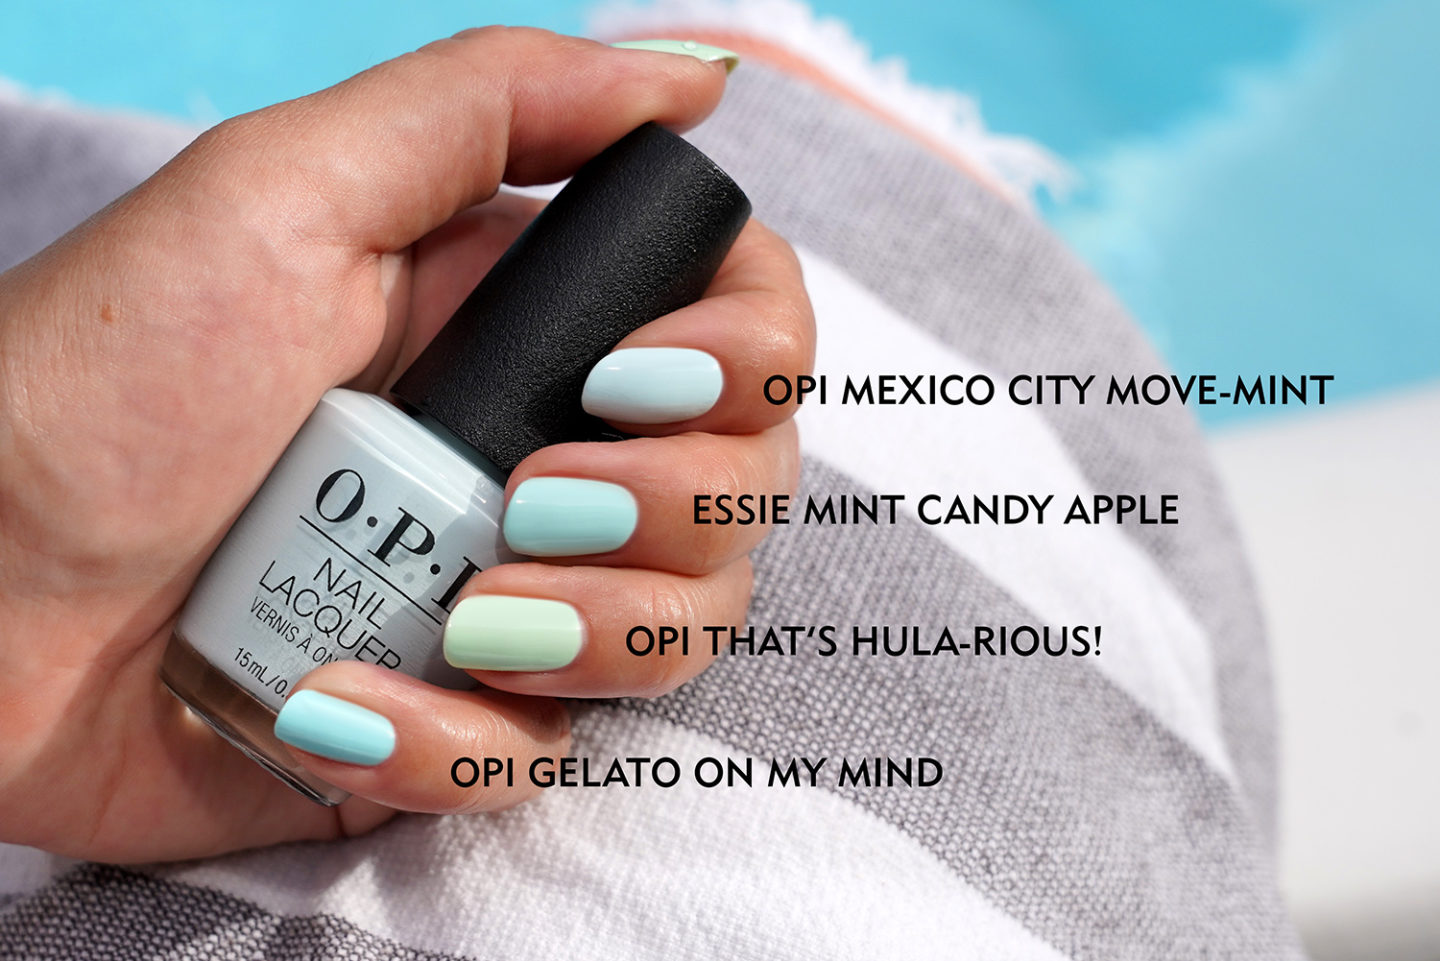 Vernis à ongles à la menthe OPI Mexico City Move-Mint, Essie Mint Candy Apple, OPI That's Hula-rious, OPI Gelato on my Mind